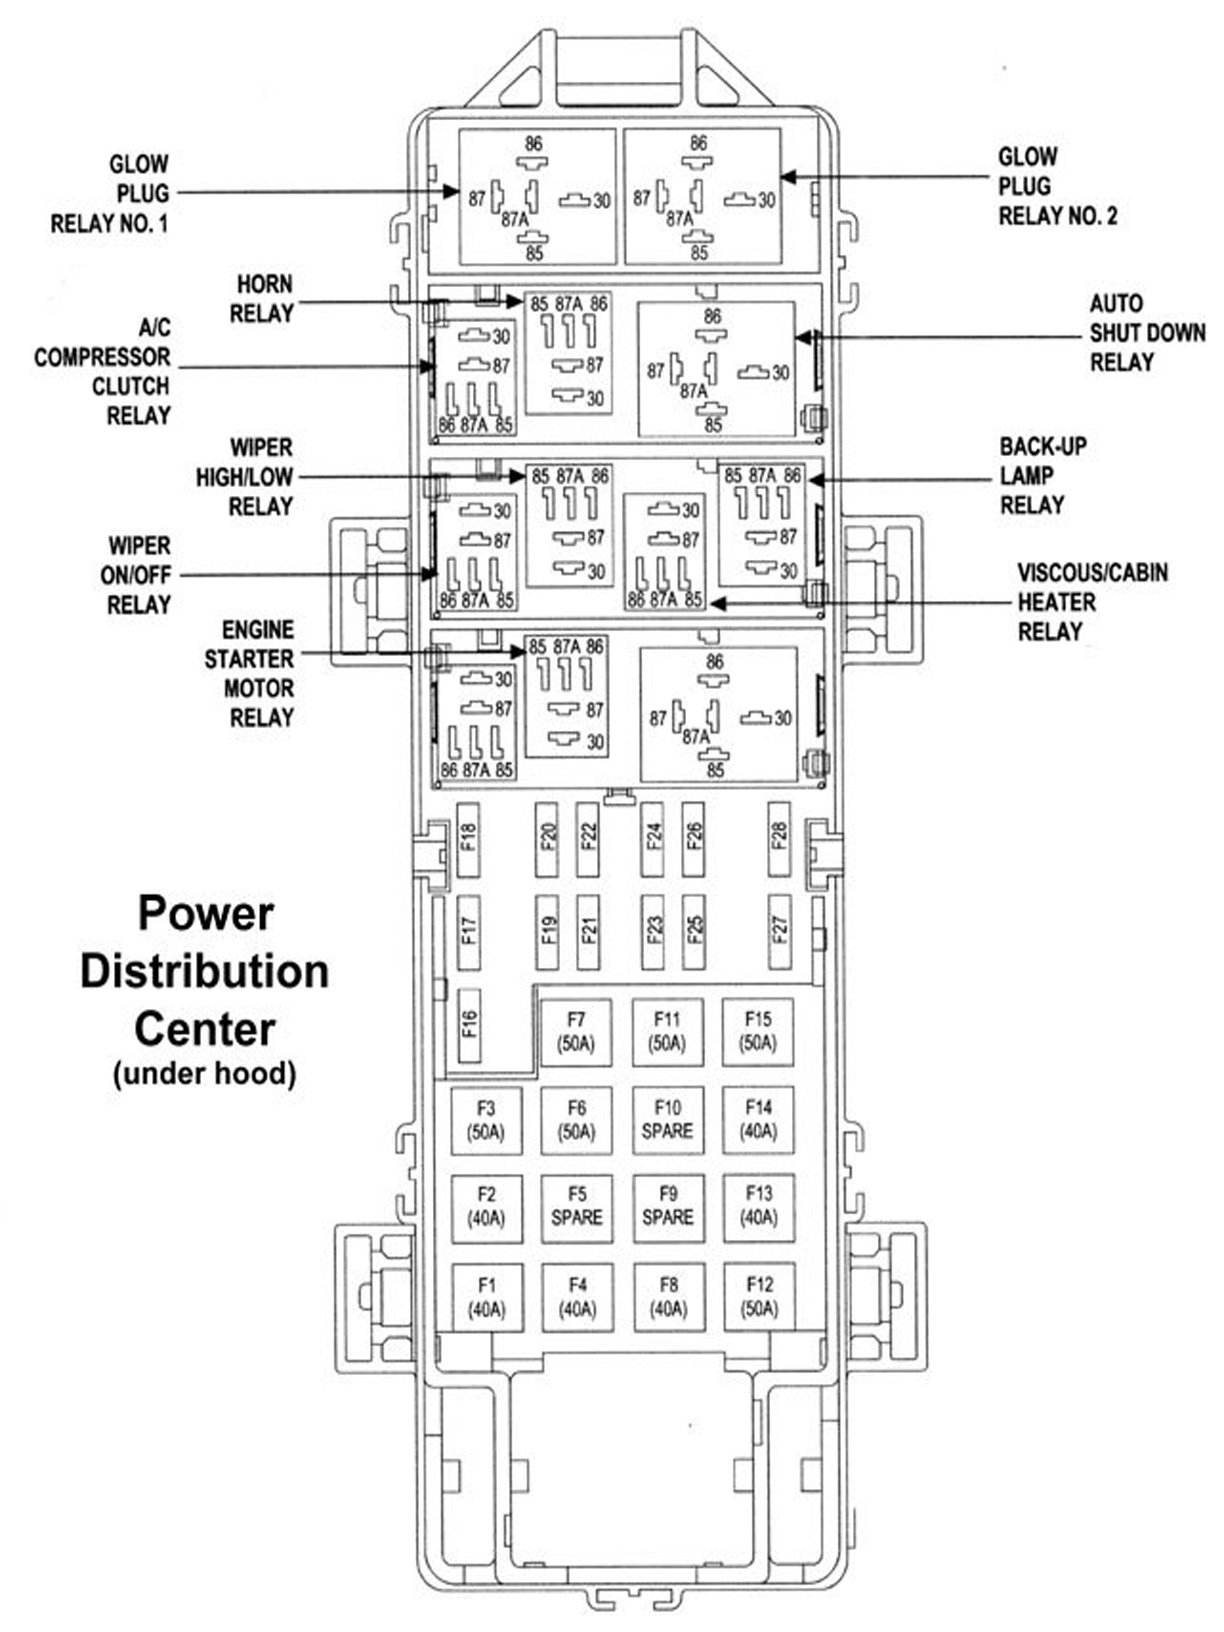 Jeep Grand Cherokee 1999-2004: Fuse Box Diagram